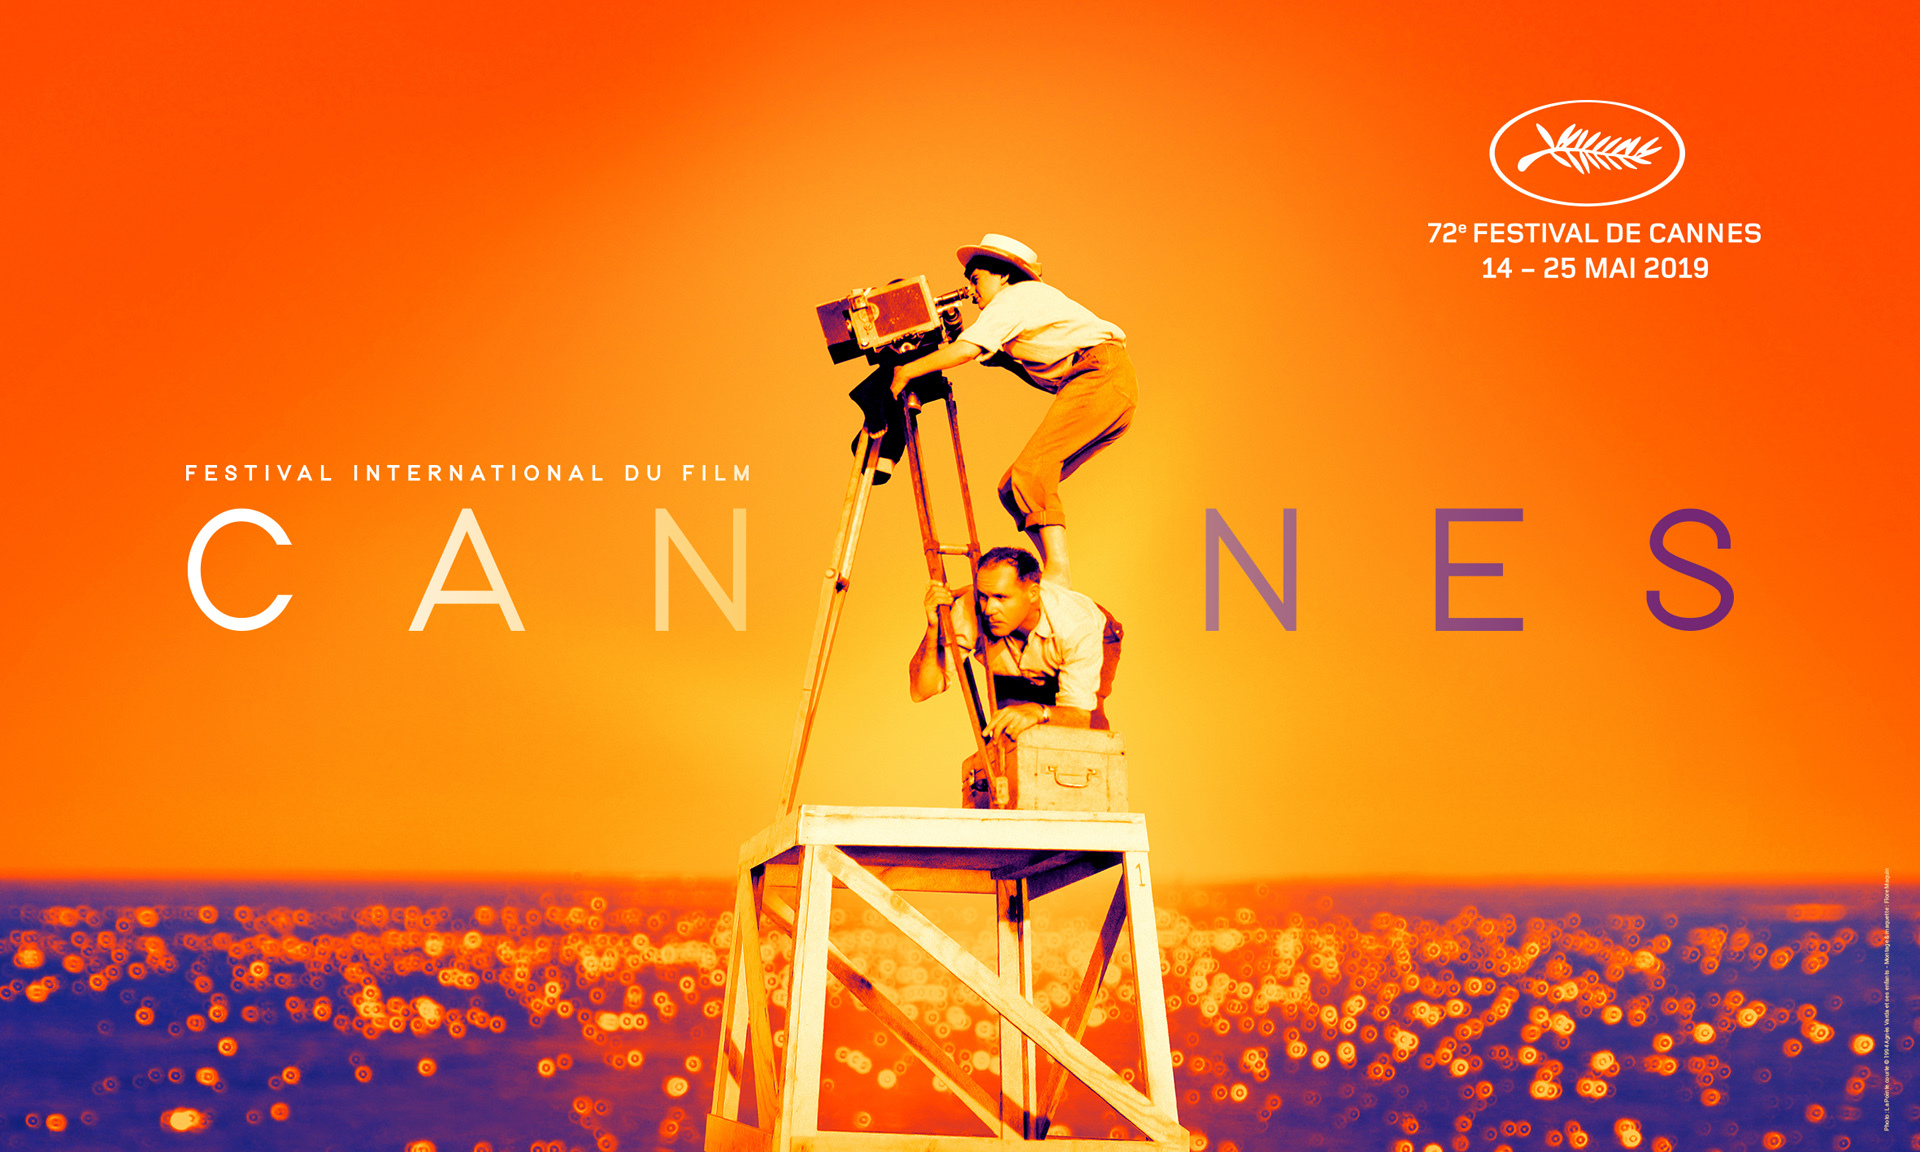 2019 Cannes Festival Poster With Varda Parvo Stein Thefilmbook